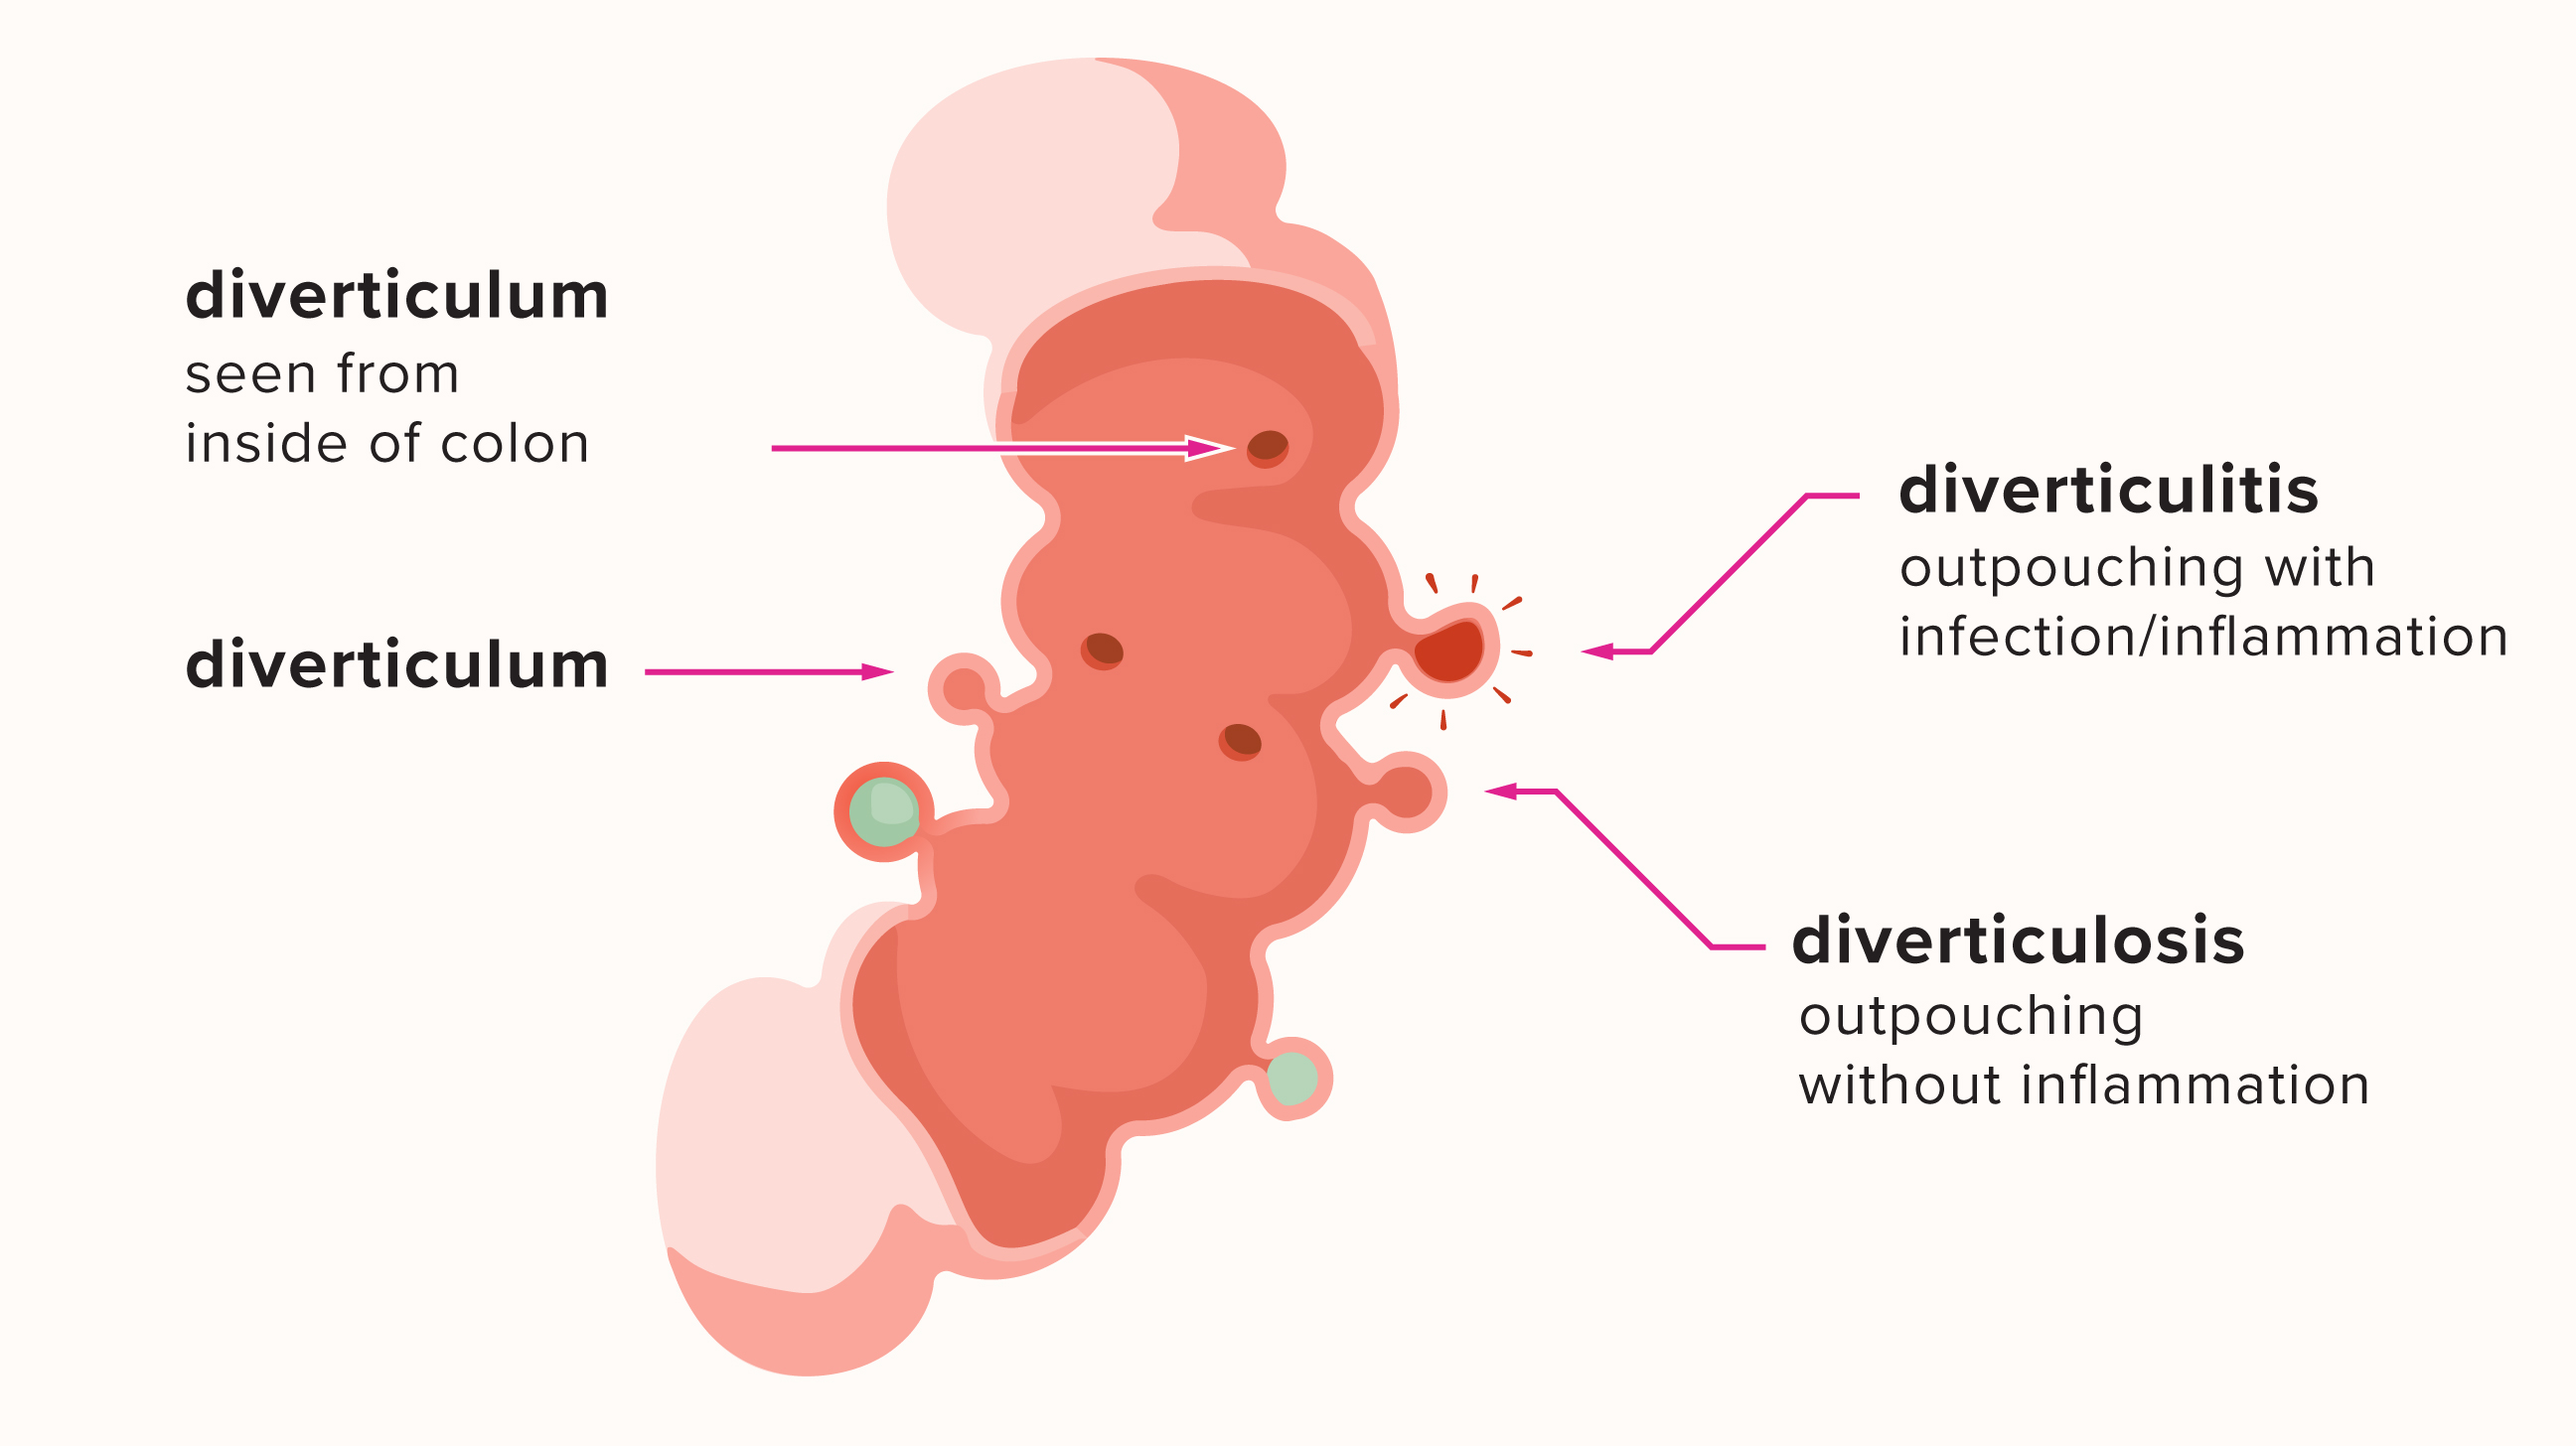 Diverticulitis: Symptoms, Causes, Treatments & More